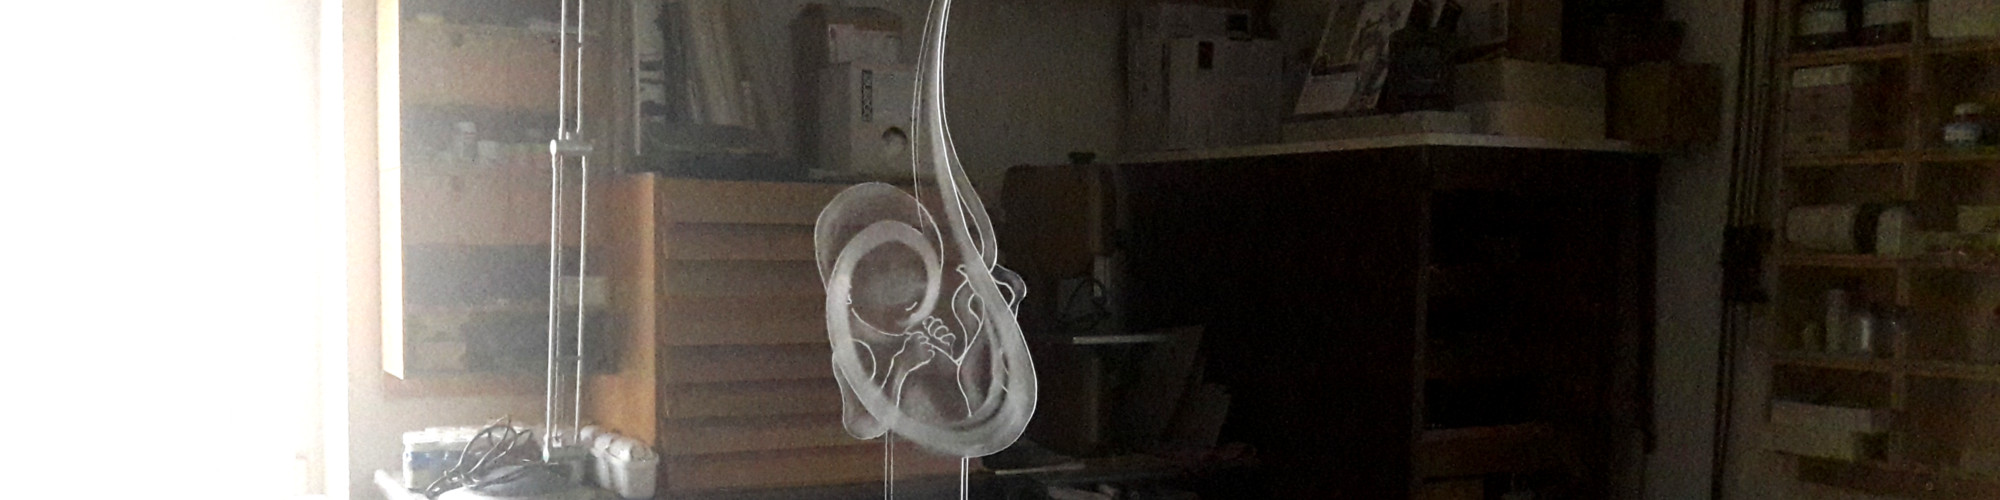 Donate-Skulptur-Embryo-Hebammen1